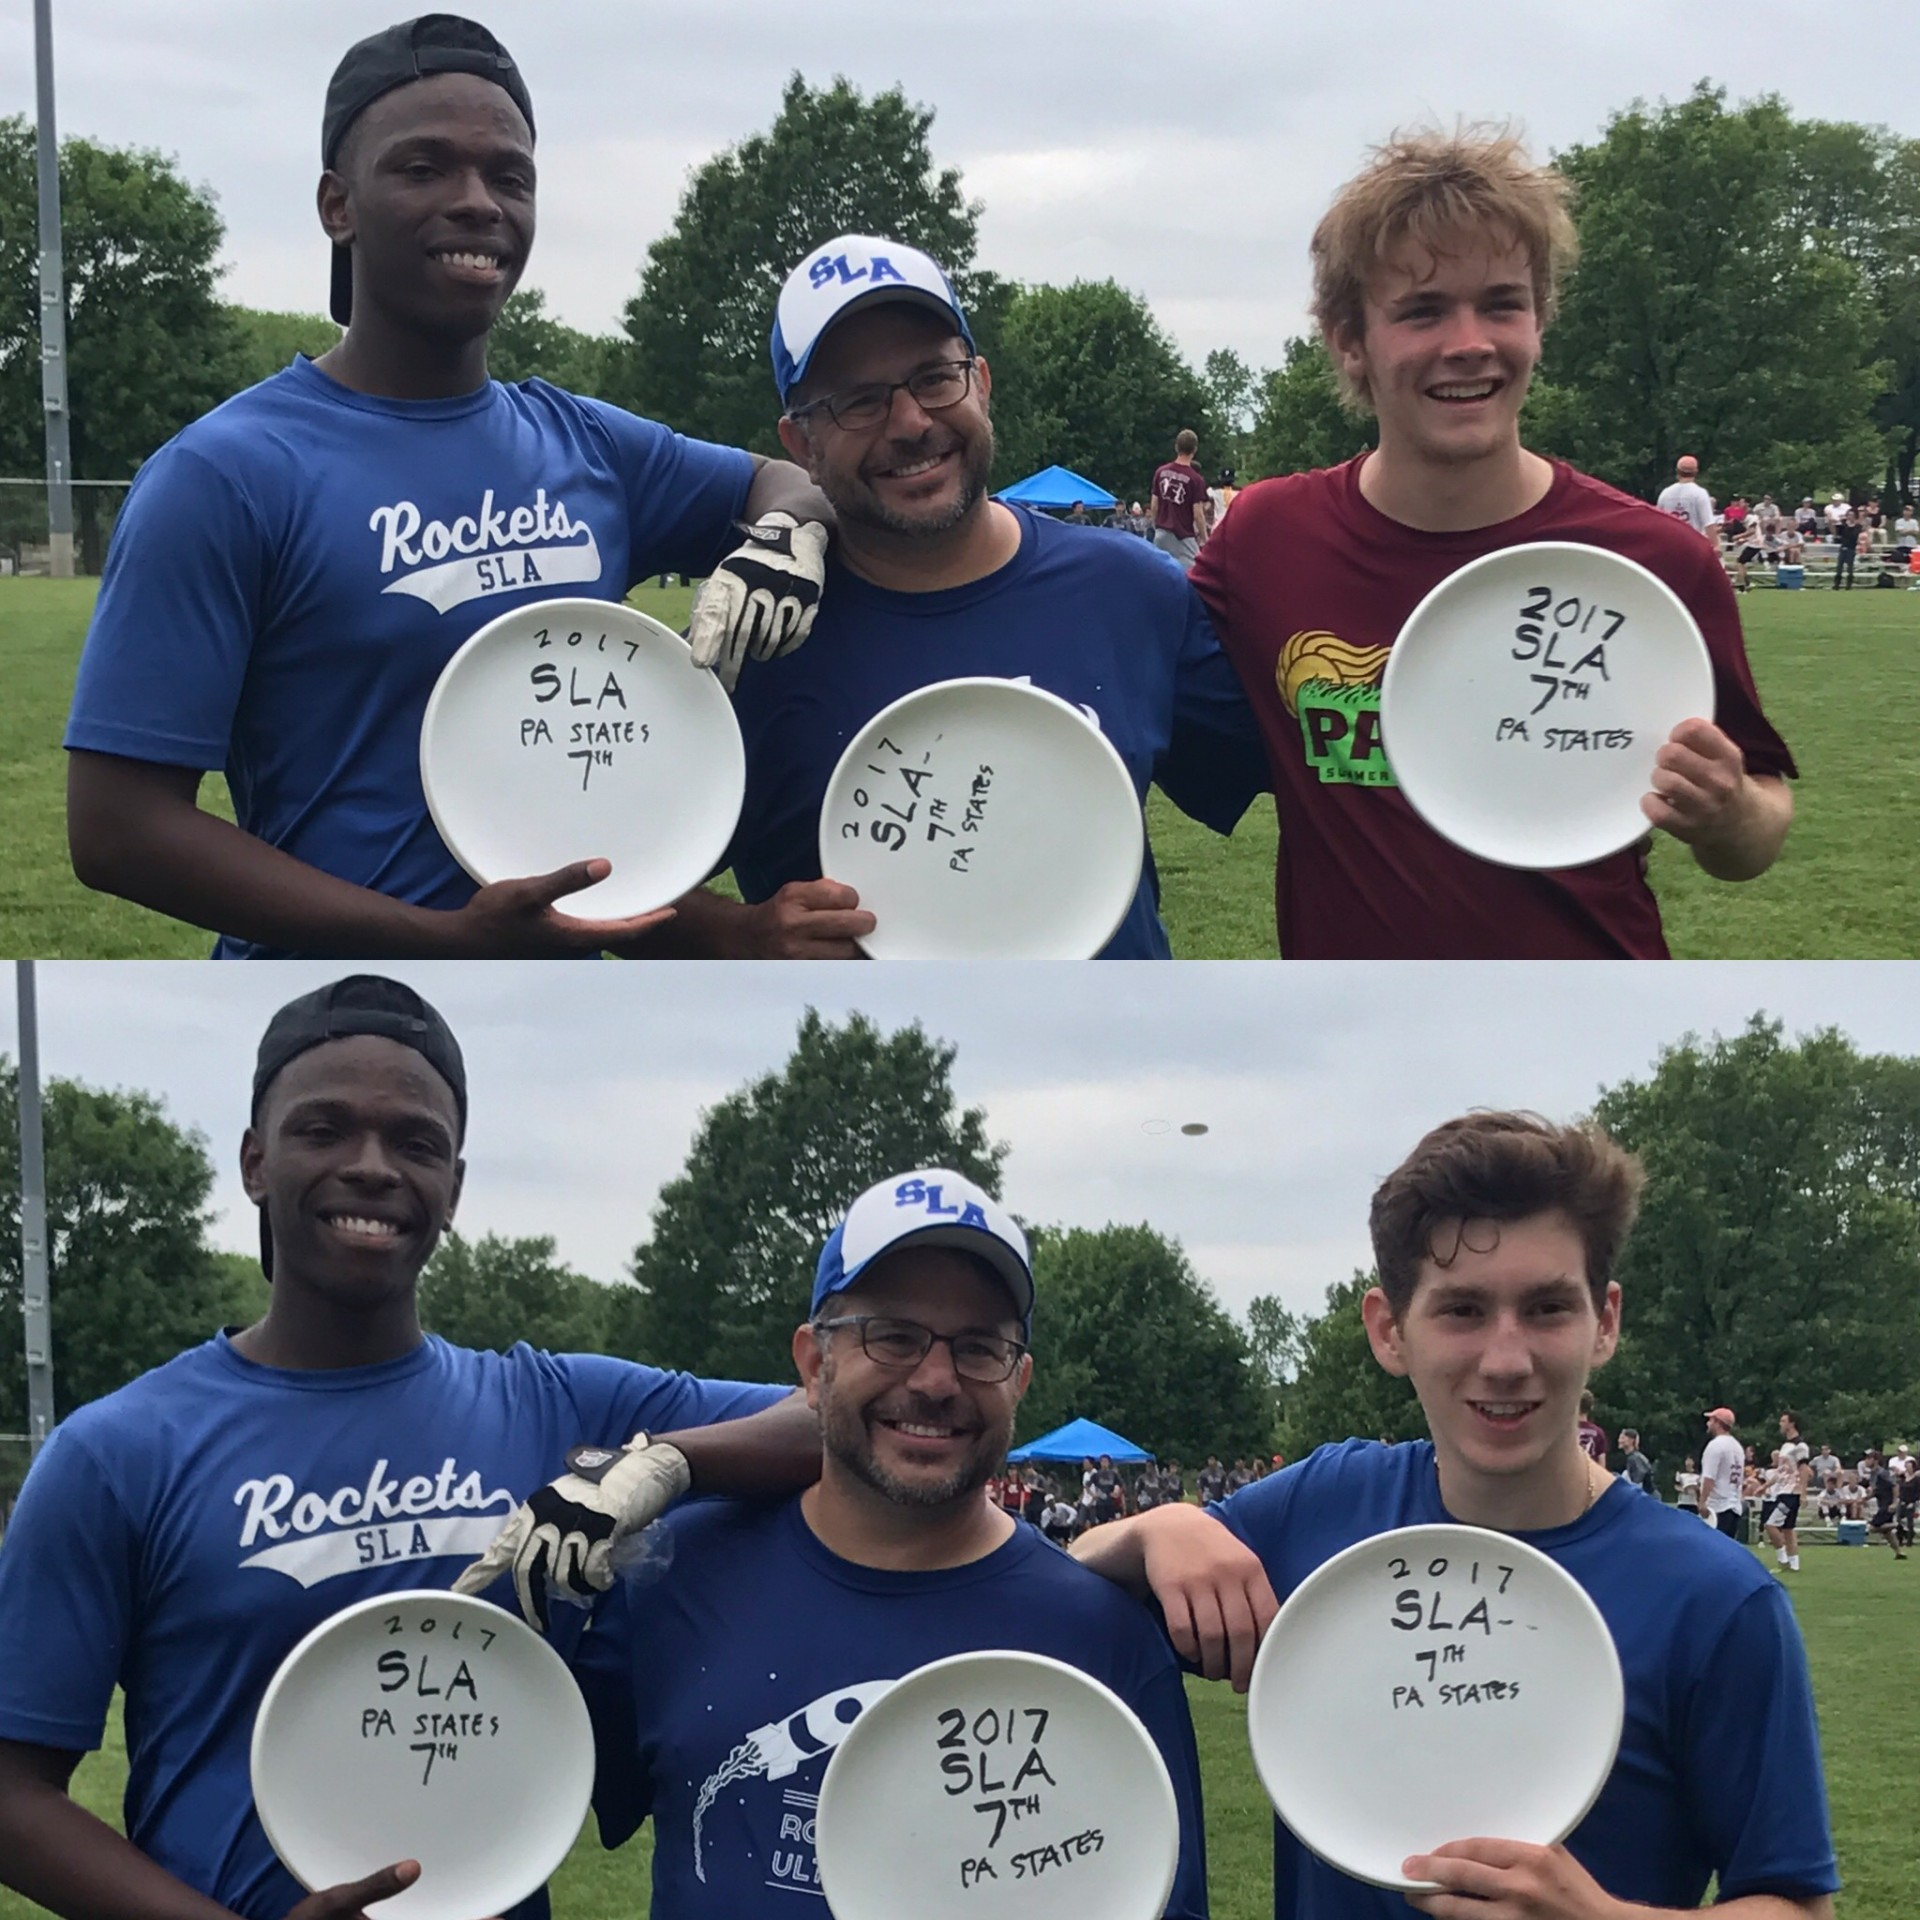 Top: Seniors Kobe Nabried and Eli Block with Coach Lehmann. Bottom: Captains Nabried and Eli Block with their coach